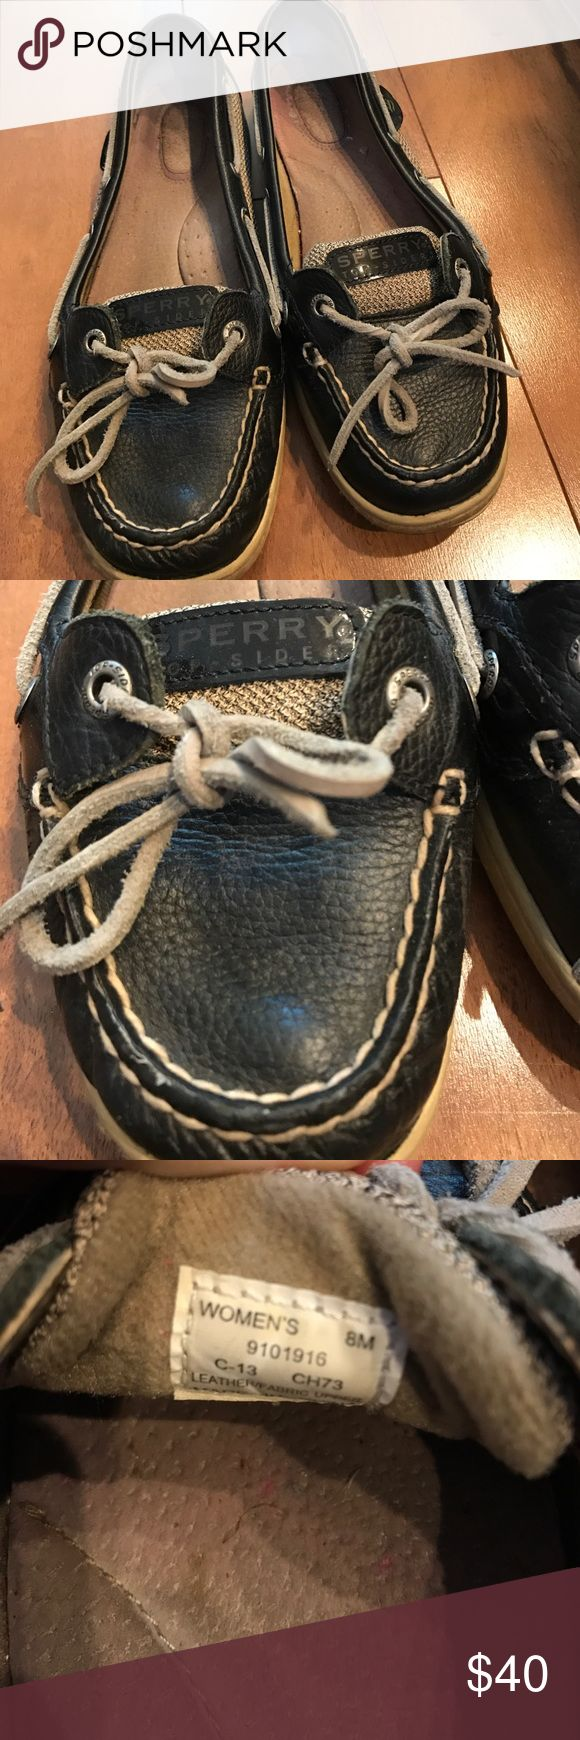 Used Black Angelfish Sperry Topsiders! (size 8) Used Black Angelfish Sperry Topsiders for sale in decent condition! Size 8. Perfect for summer to wear on any occasion. These are black and grey so they go with any outfit! *no trades, all offers will be considered through the offer button Sperry Top-Sider Shoes Flats & Loafers